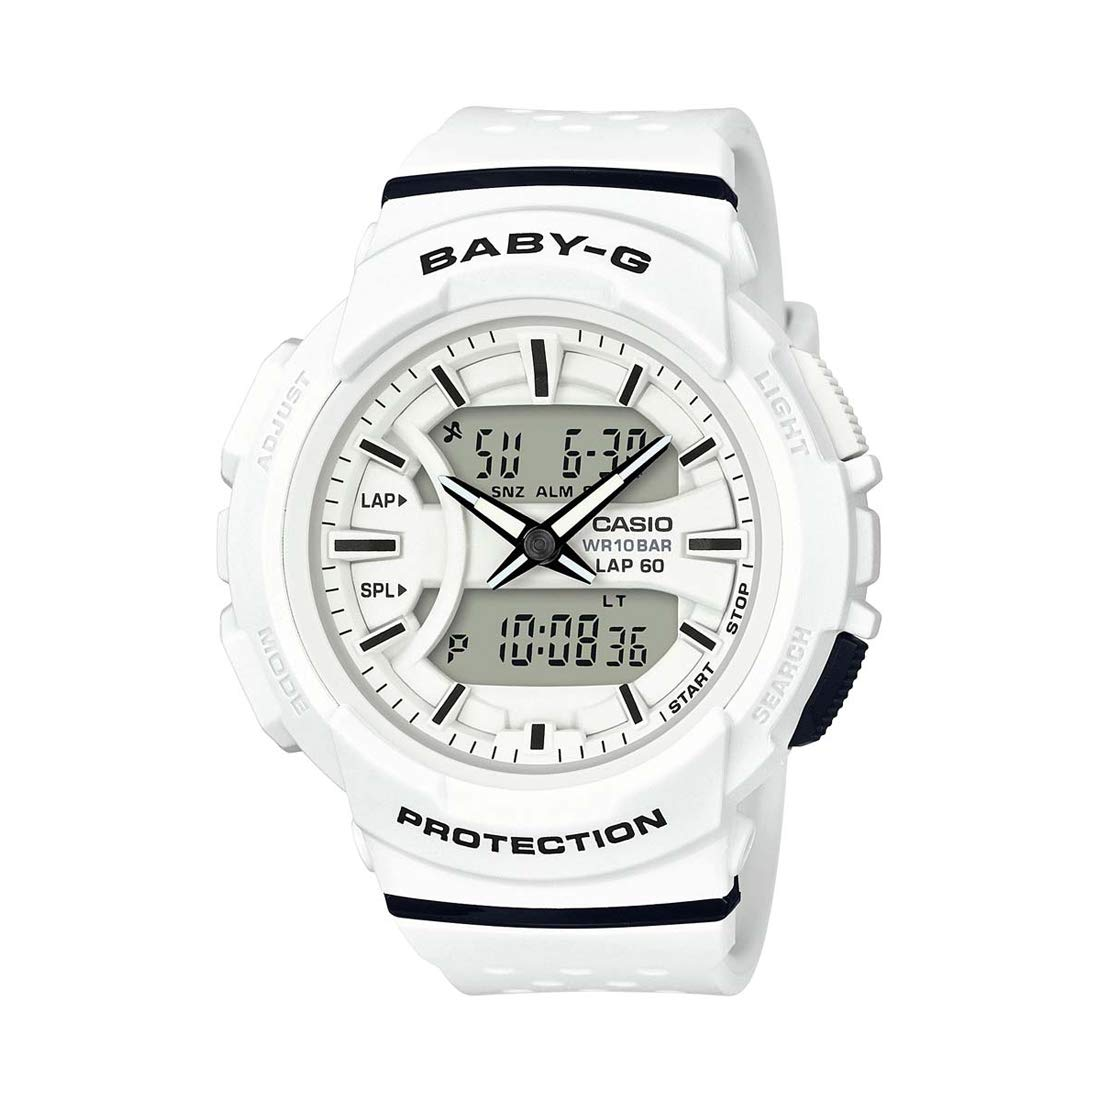 Casio Baby-g Analog-Digital White Dial Women's Watch – BGA-240-7ADR (B190)